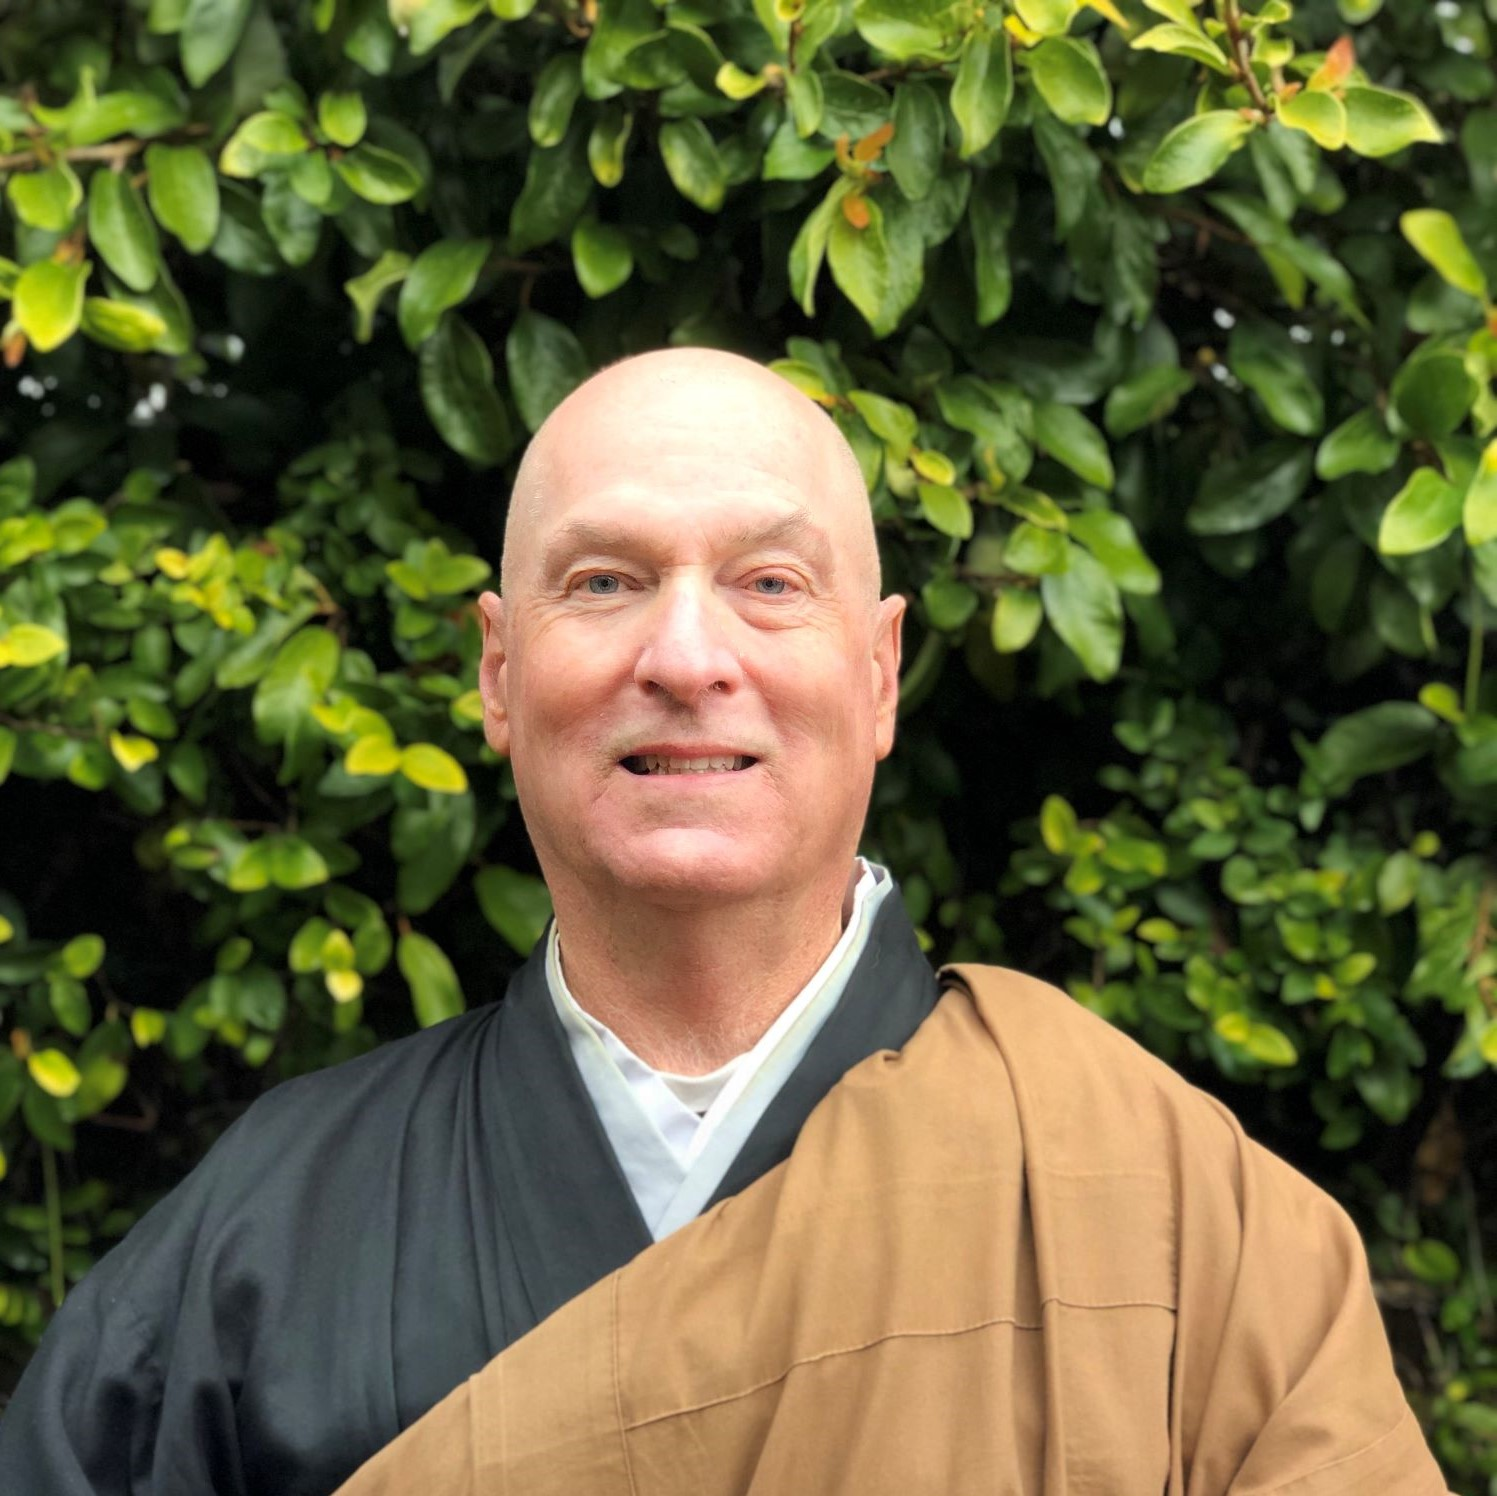 Patrick Teverbaugh - Patrick Teverbaugh ordained as a priest in 1999 and received Dharma Transmission from Katherine Thanas in January, 2011. He organizes activities for the Global Sangha, those interested in practicing with social and environmental issues.